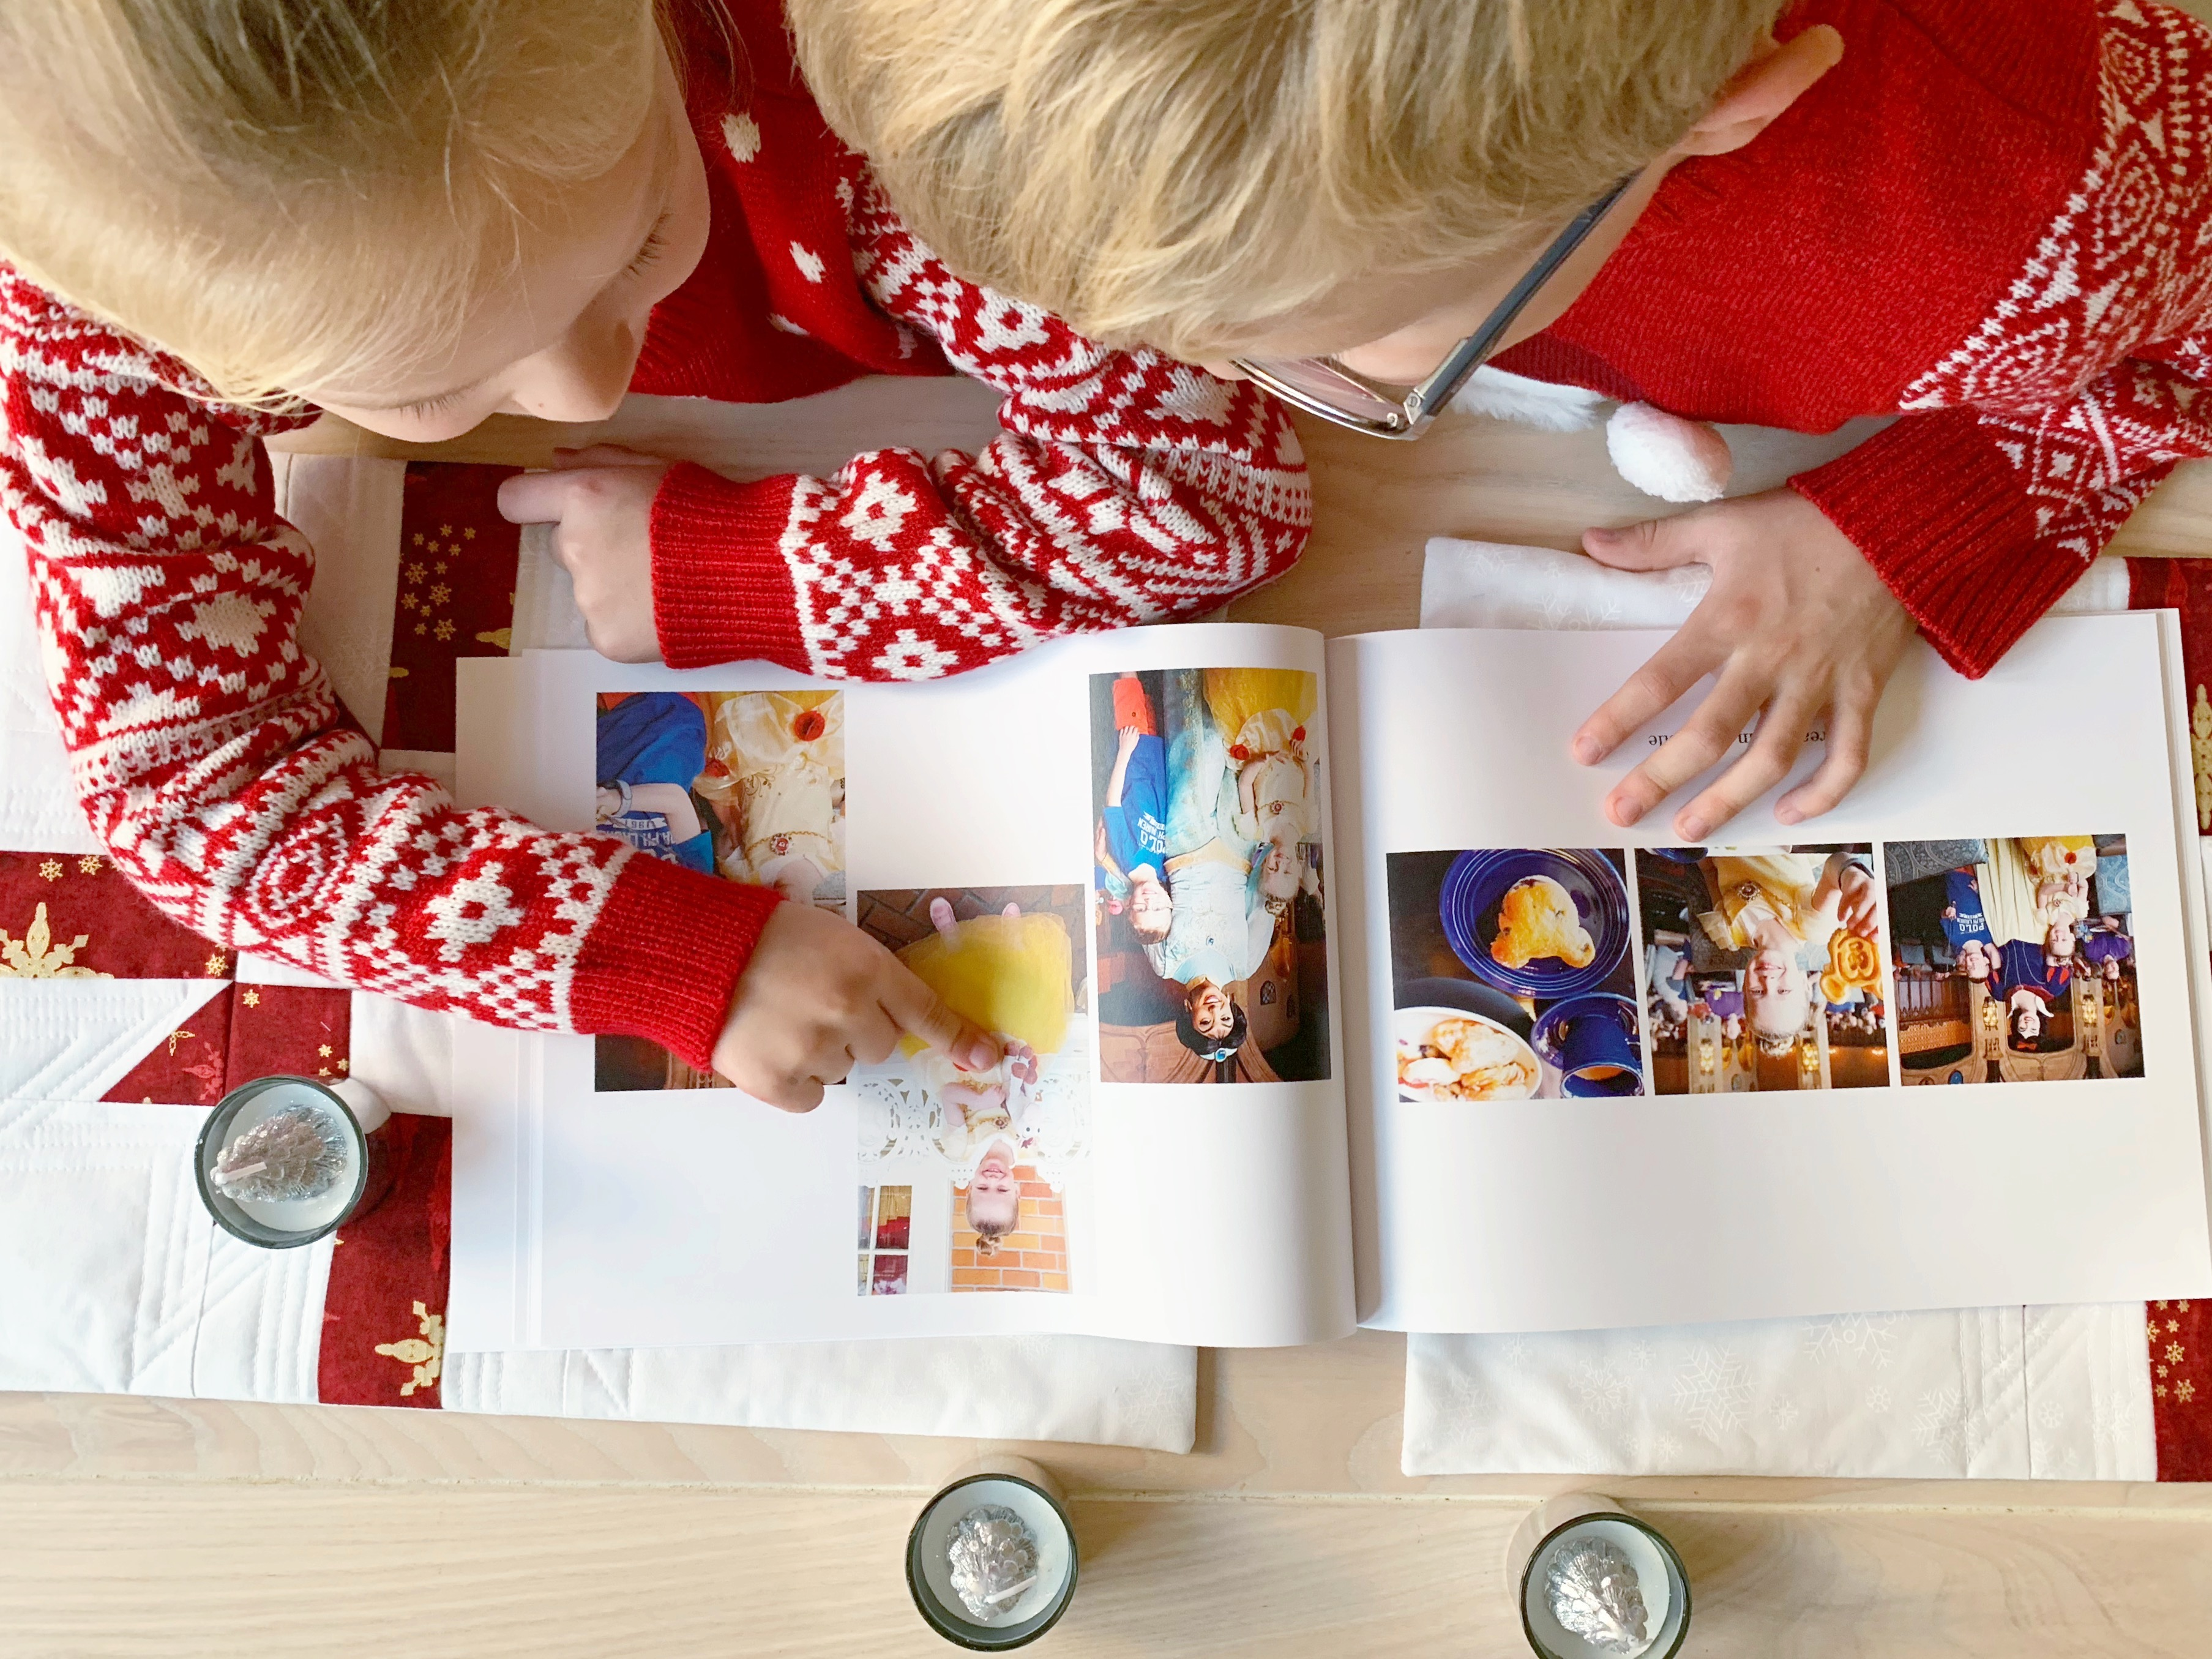 photobooks Getting ready for the holidays with Rosemood